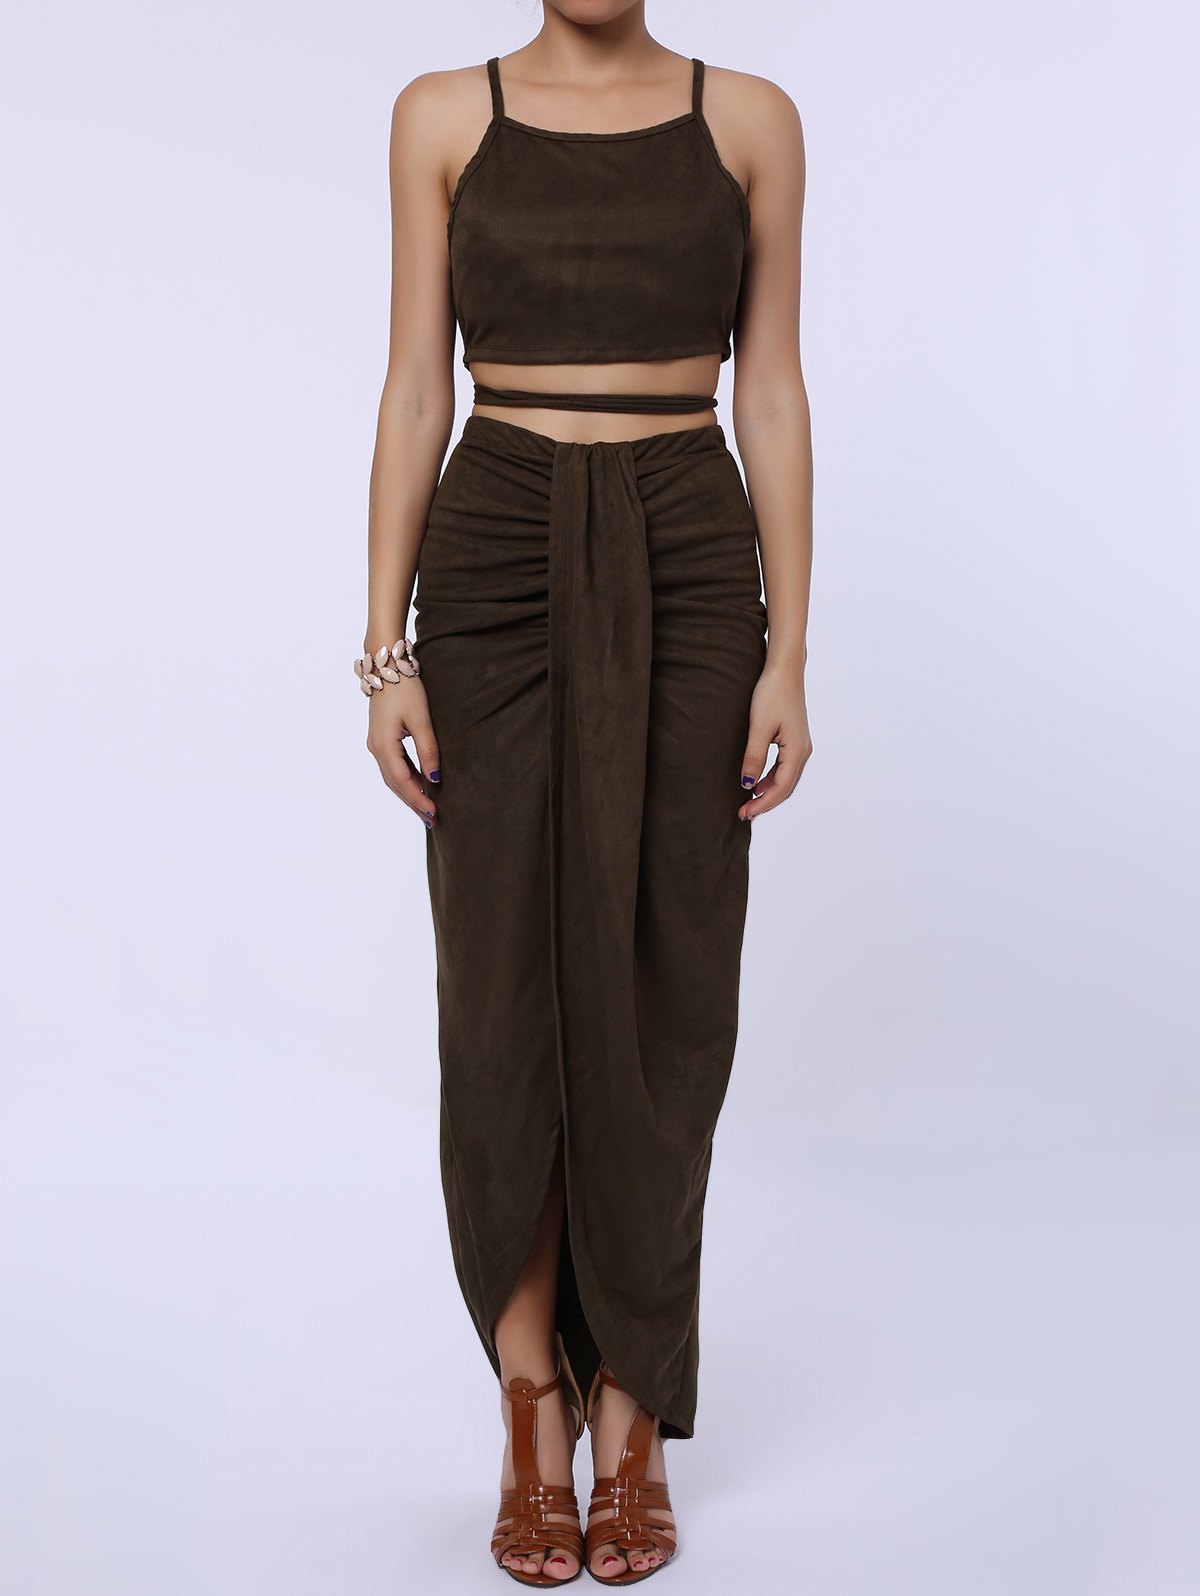 Sexy Spaghetti Strap Tank Top + Asymmetrical High-Waisted Skirt Women's Twinset